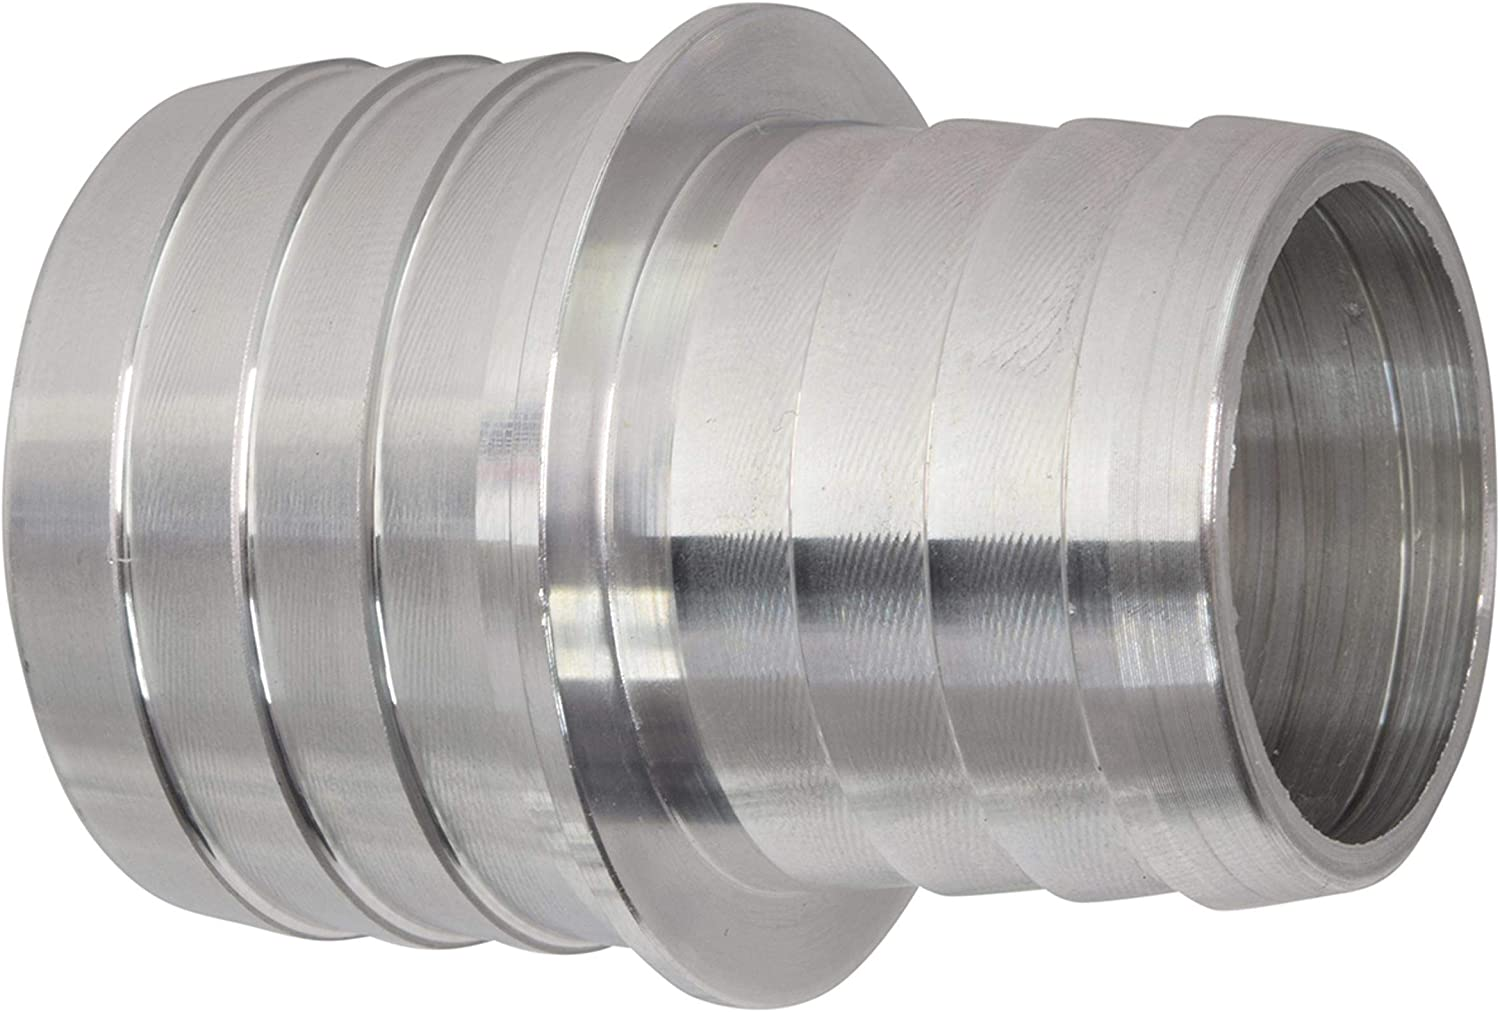 """ICT Billet 1-1/4"""" to 1-1/2"""" Inch Hose Barb Splice Coupler Repair Reducer Fitting Adapter Connector Radiator Coolant Intercooler Heat Exchanger Fluid Manufactured in USA Aluminum AN627-21A"""